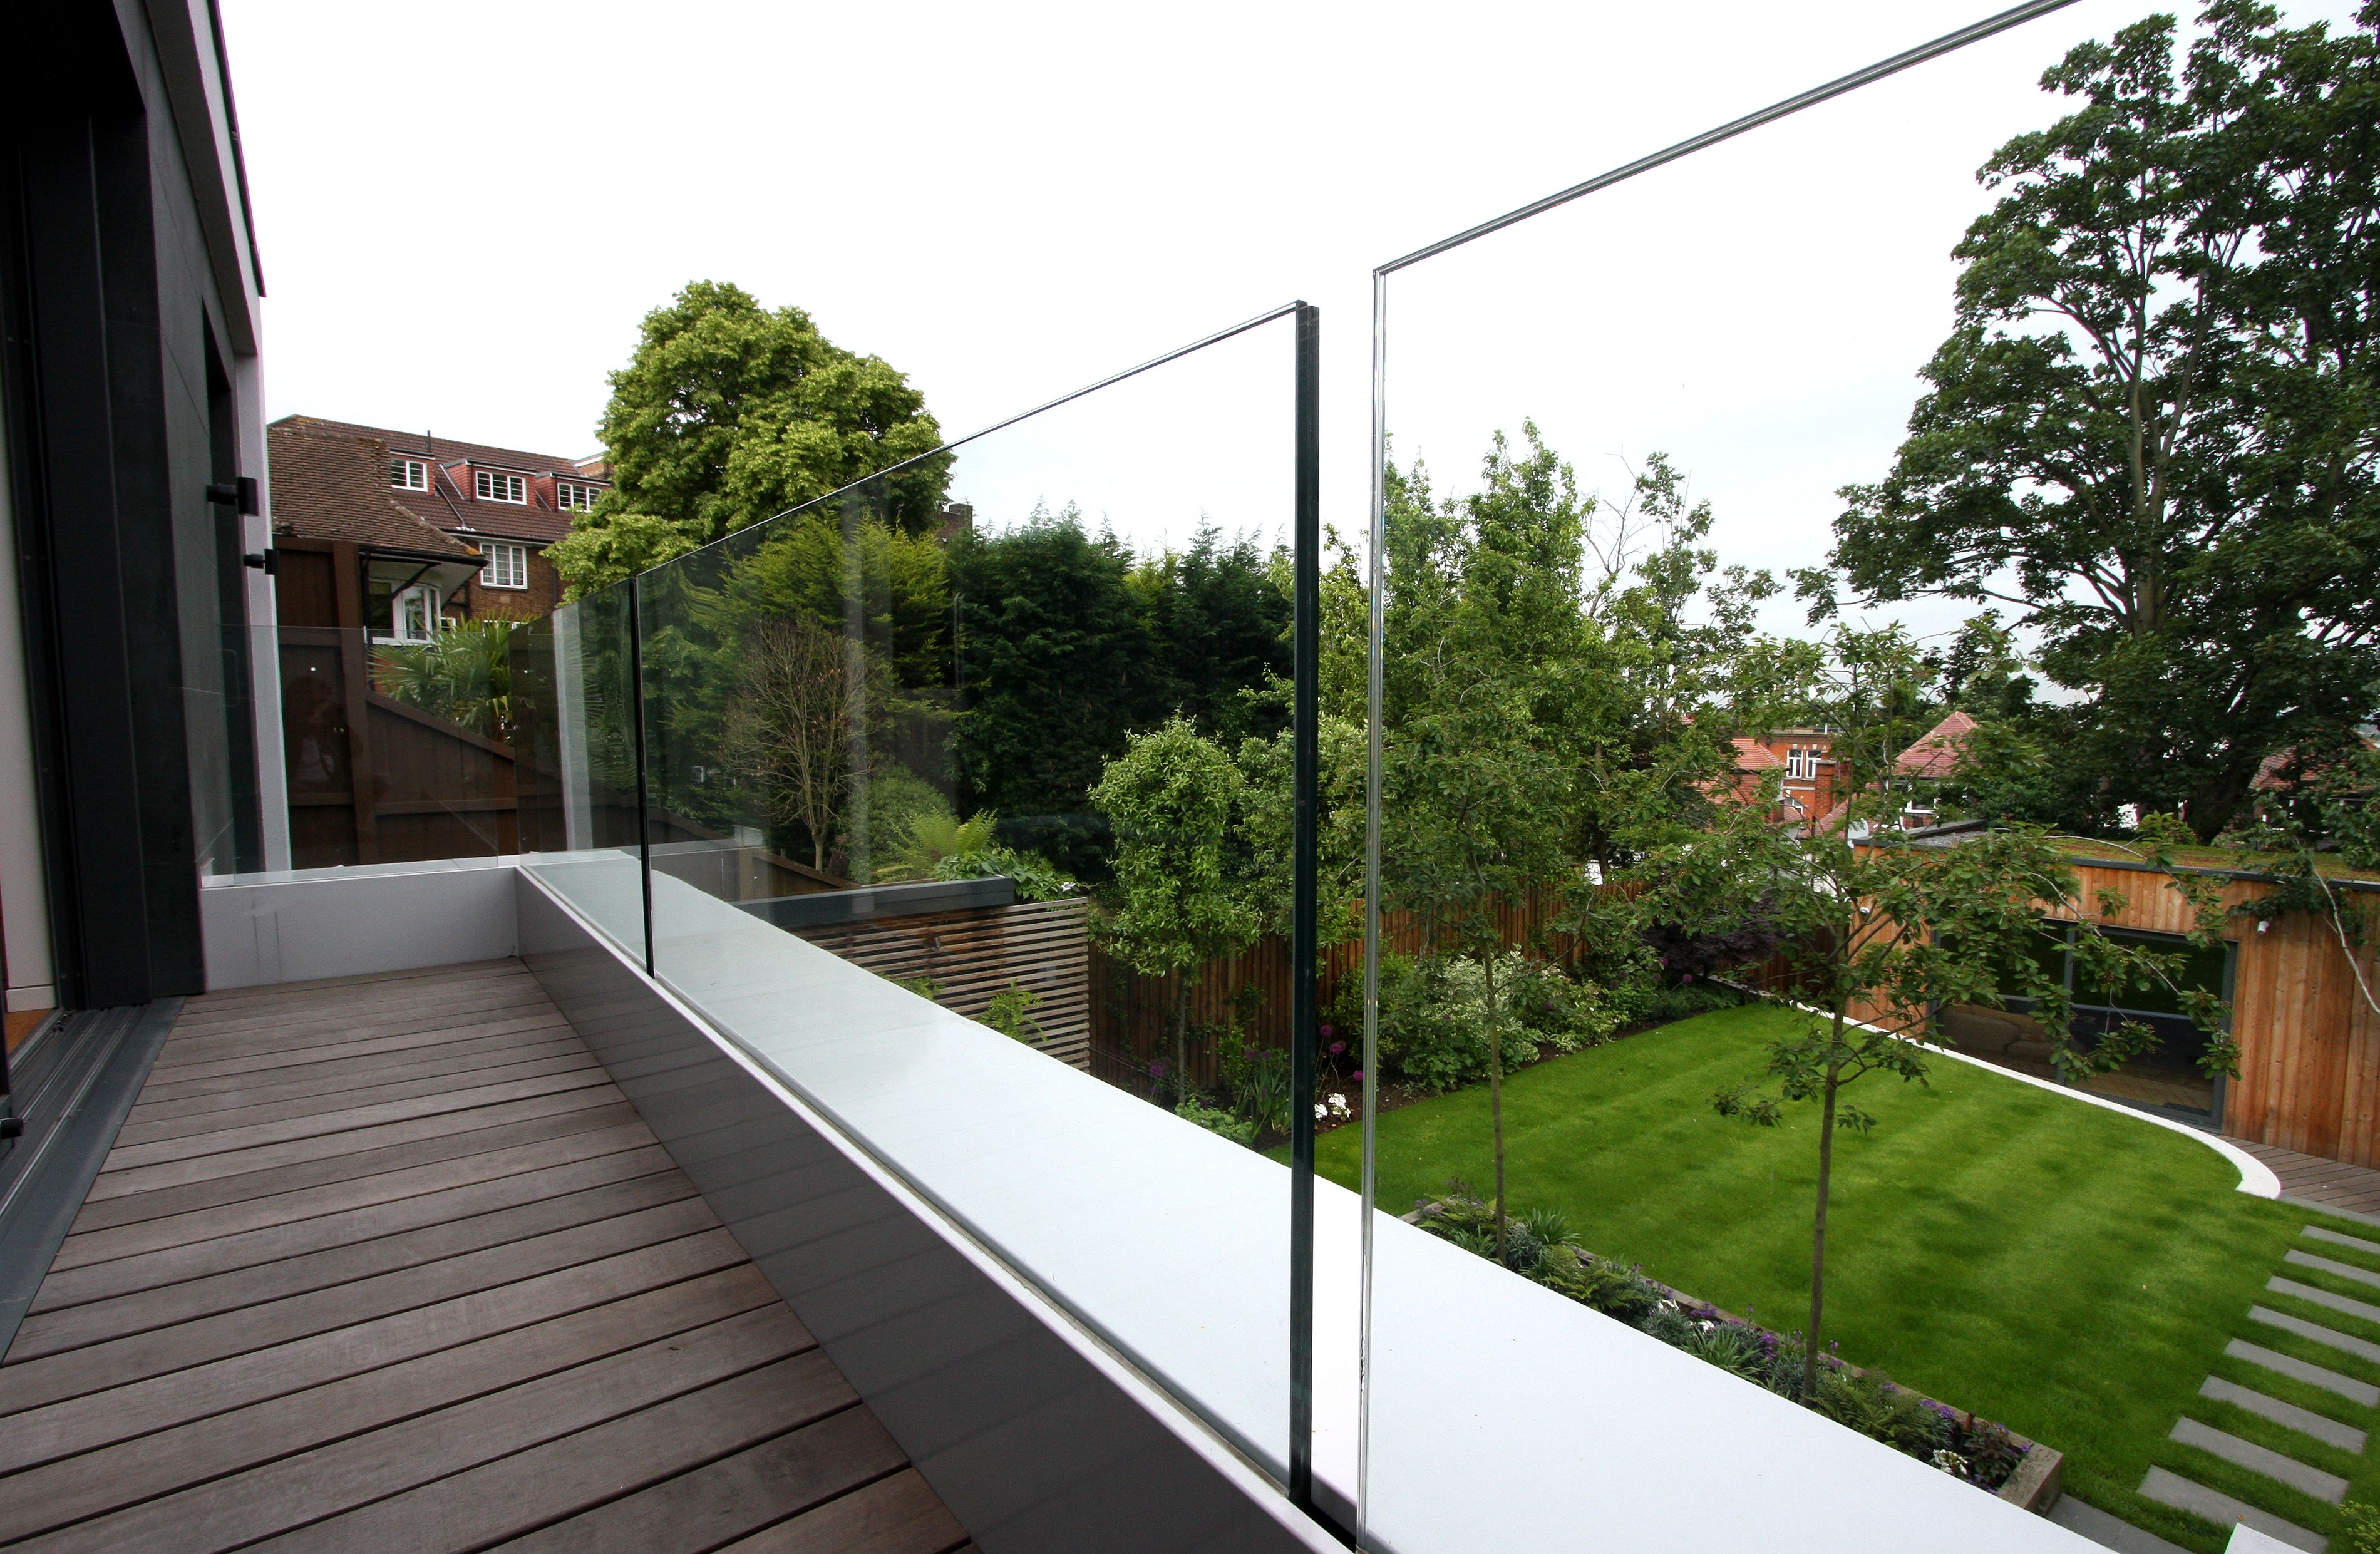 framelessglass balustrade to a first floor balcony to the